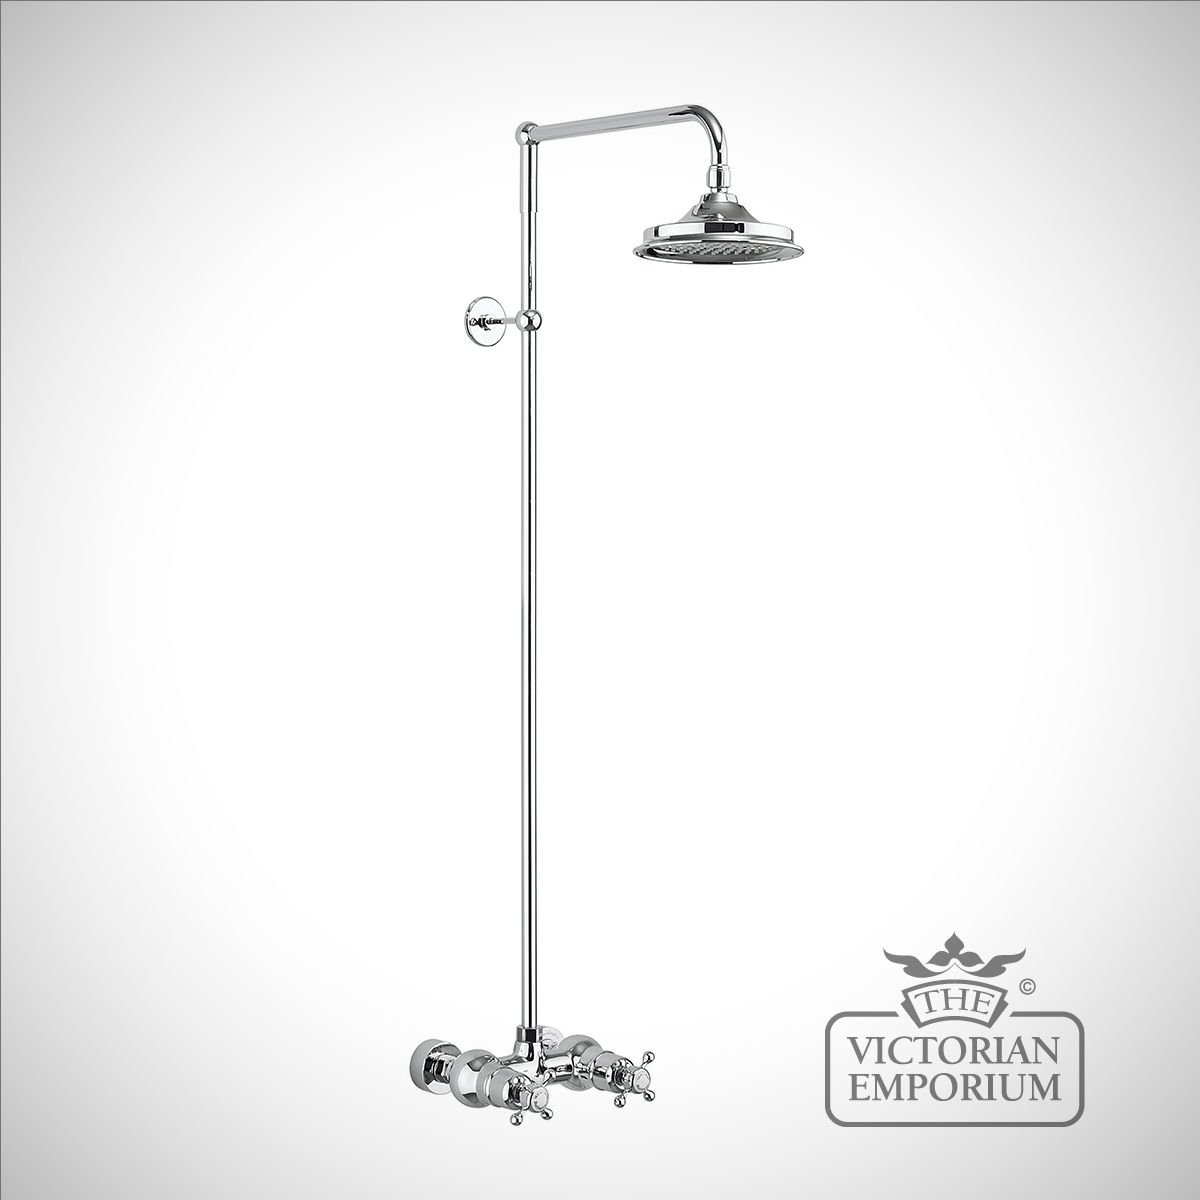 Dorset Thermostatic Exposed Shower Bar Valve Single Outlet